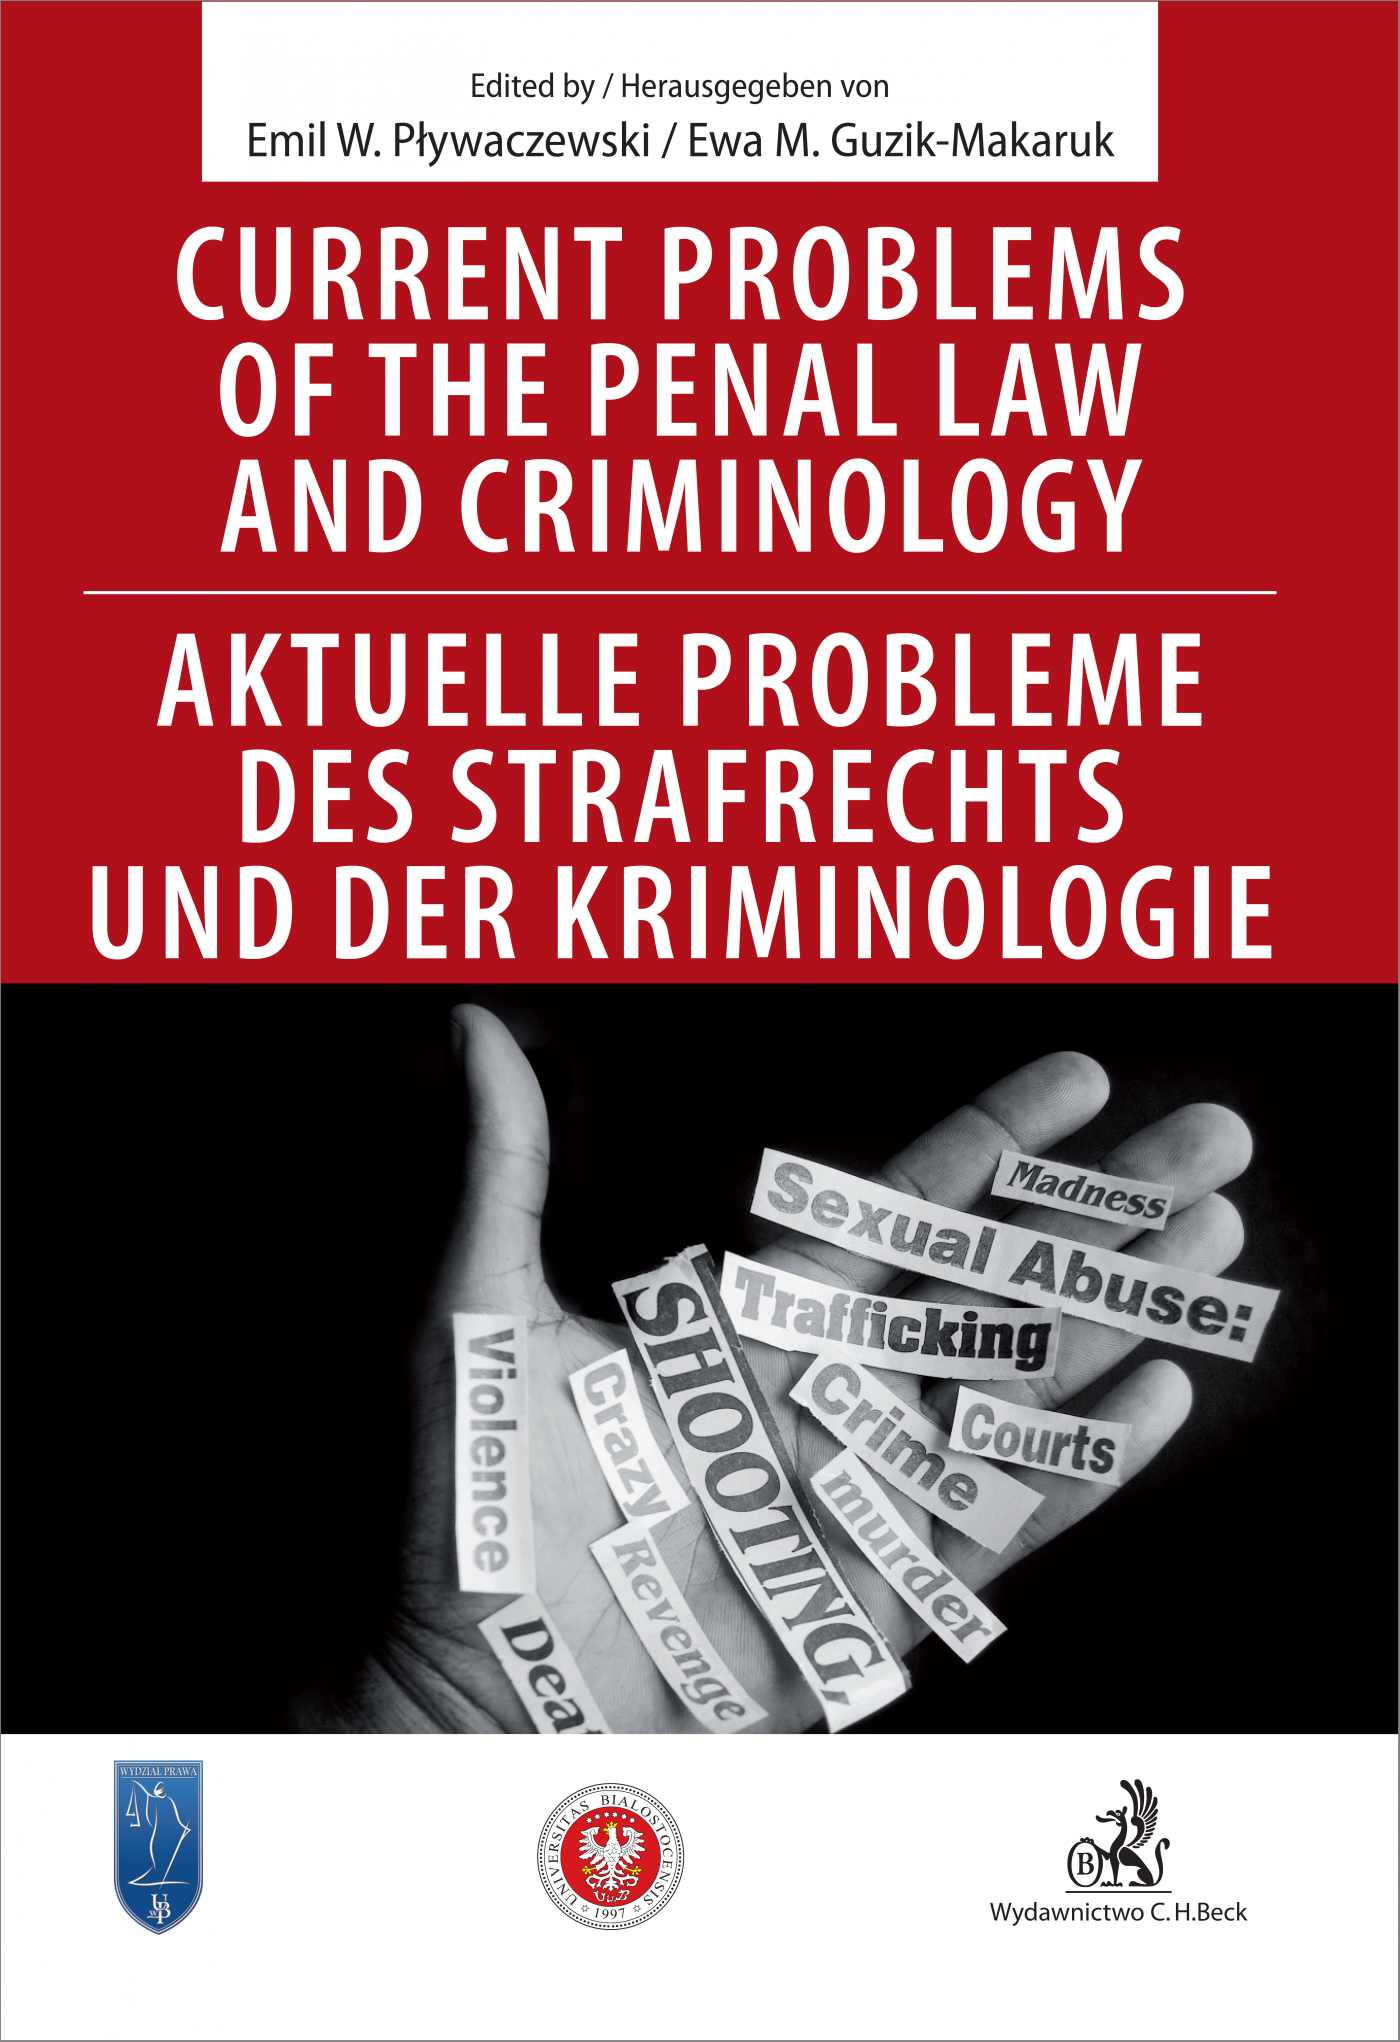 Current problems of the penal Law and Criminology. Aktuelle probleme des Strafrechs und der Kriminologie - Ebook (Książka PDF) do pobrania w formacie PDF